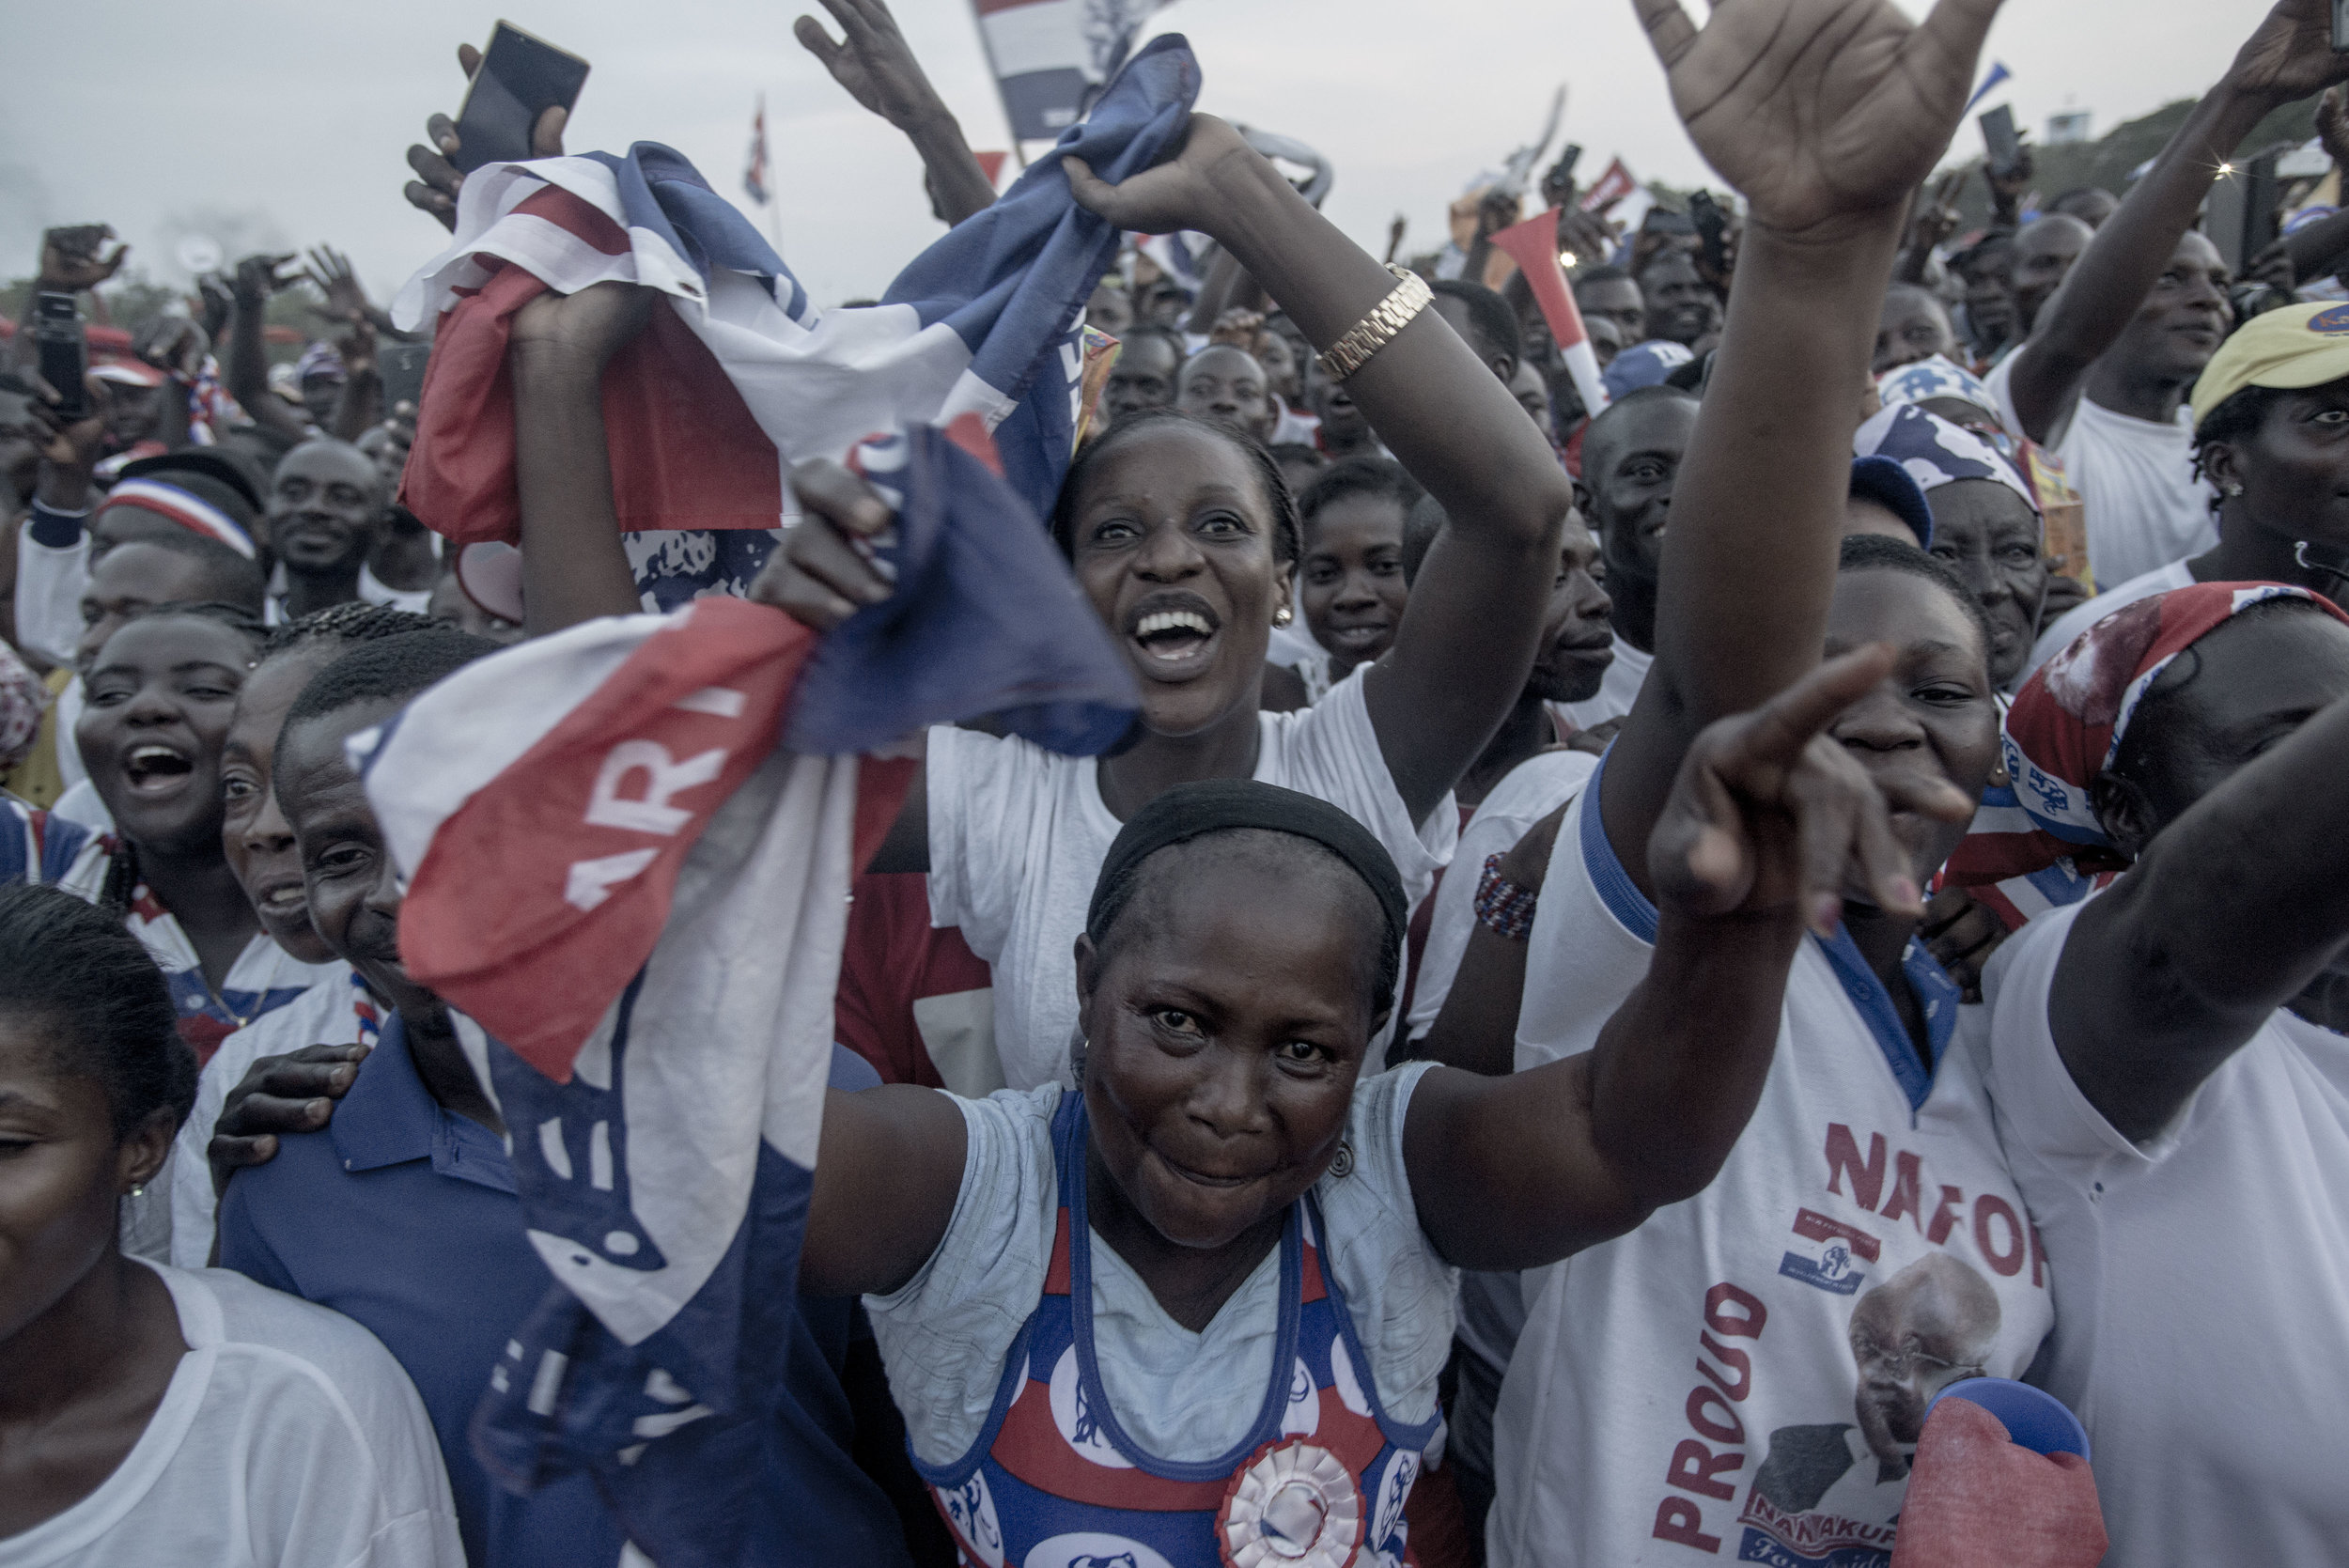 Nana Akufo Addo's NPP supporters during a rally in Tema town Accra